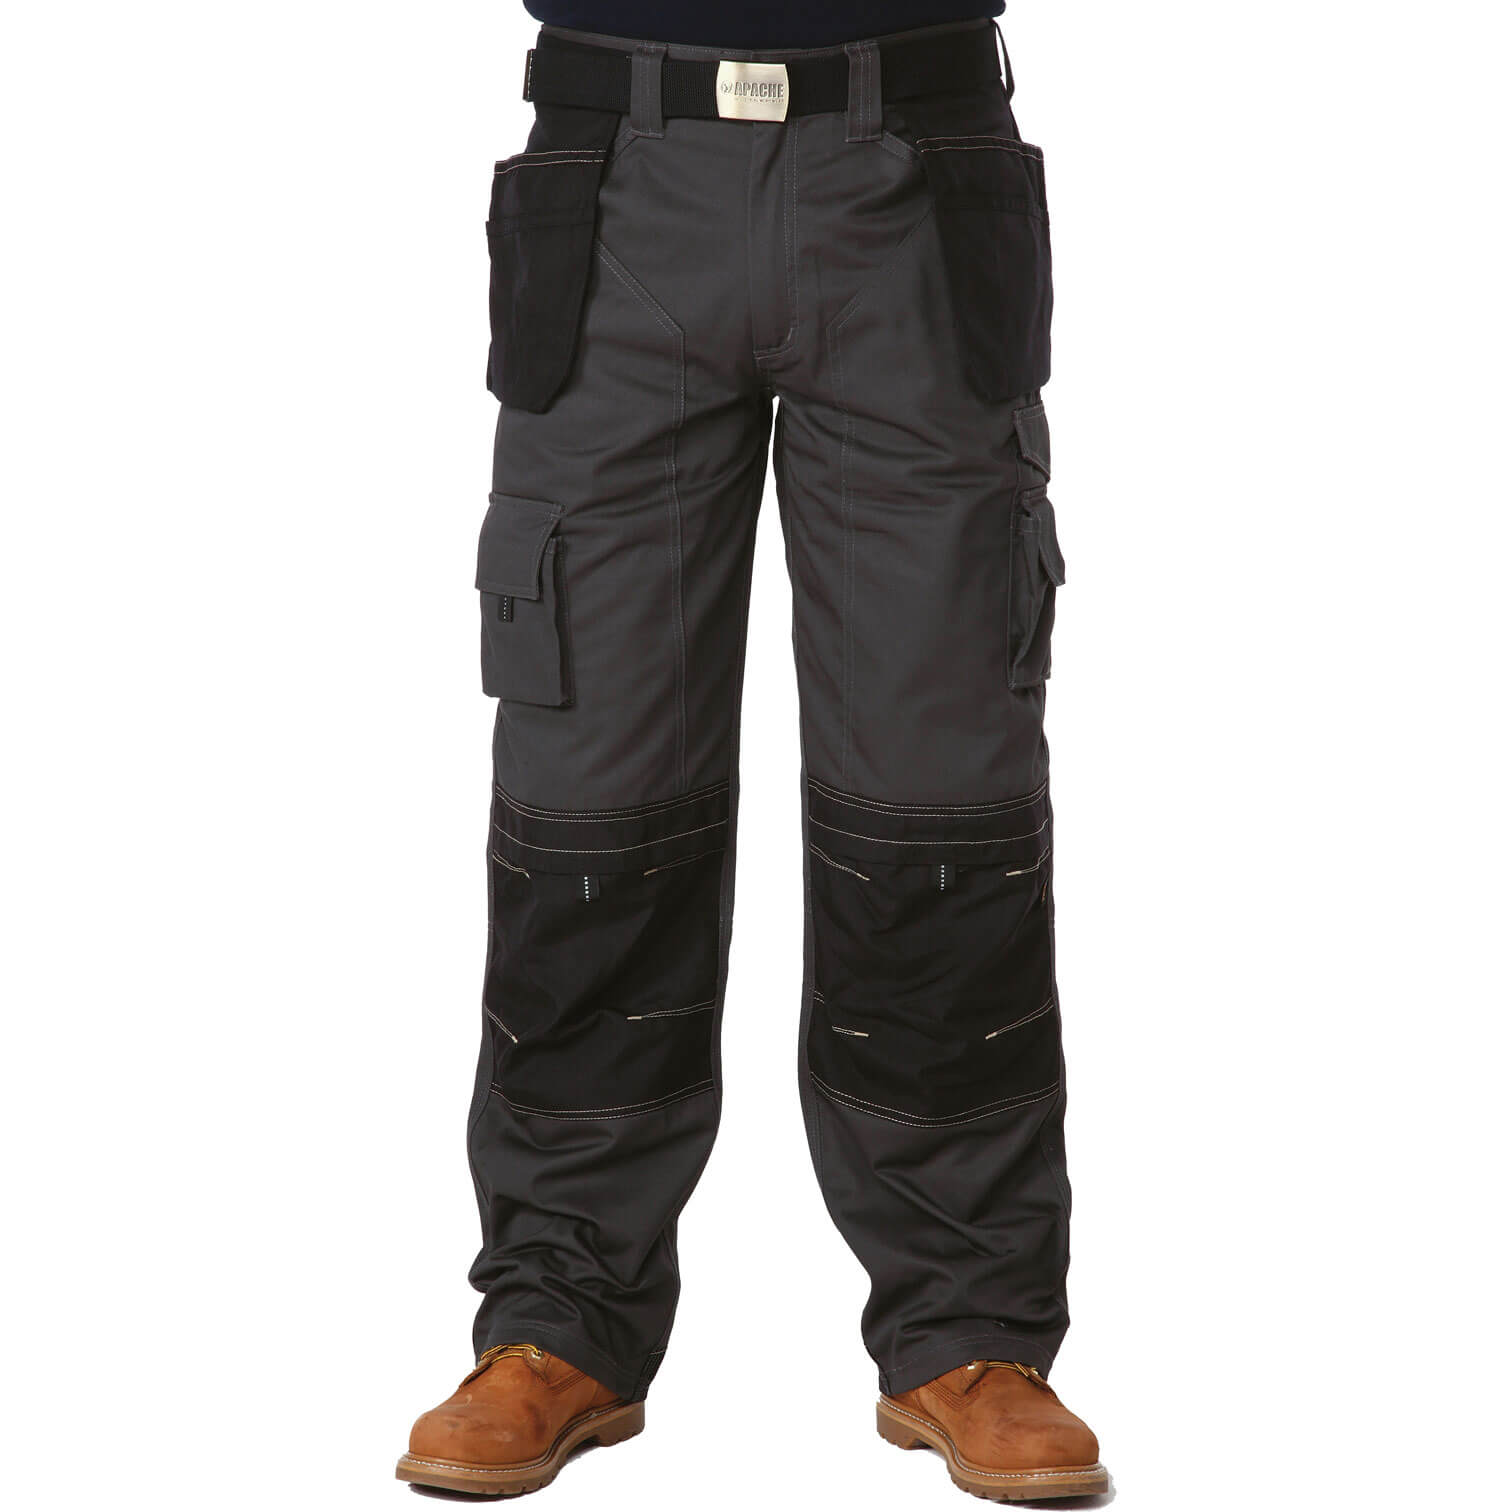 "Apache Mens Holster Pocket Work Trousers Black / Grey Waist 30"" Leg 29"""